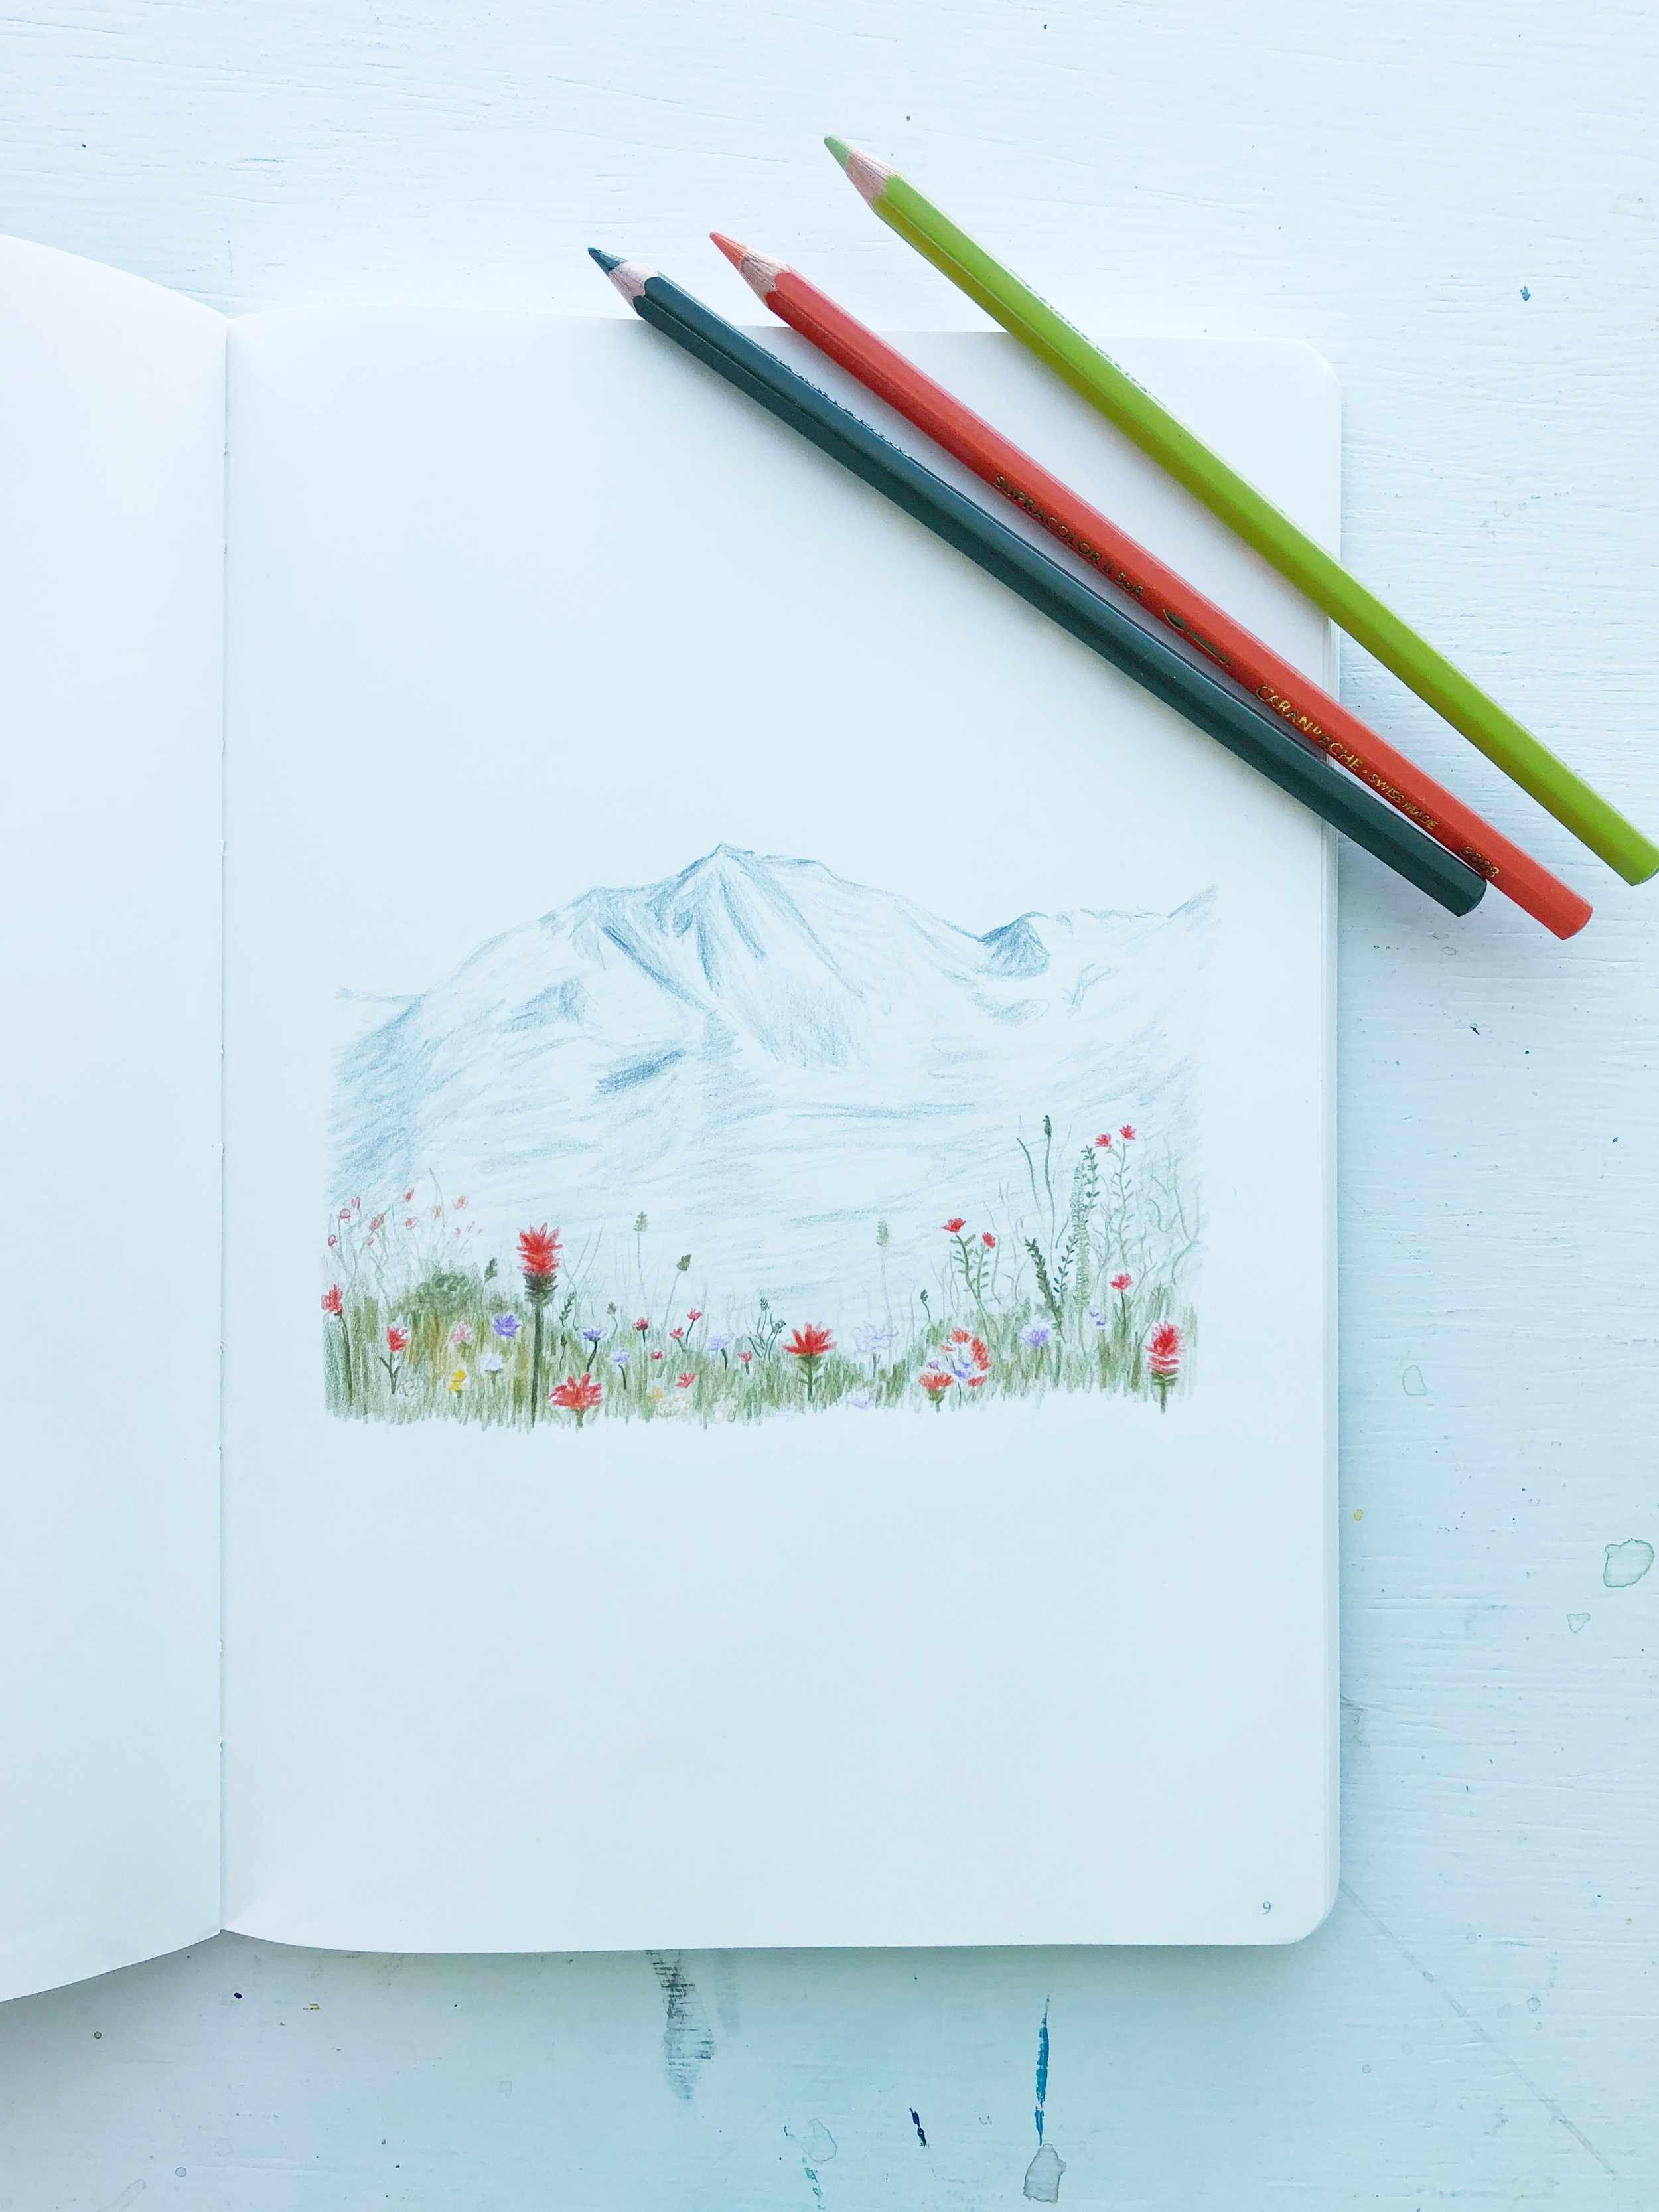 Late Summer Mountains by Wandering in Whimsy